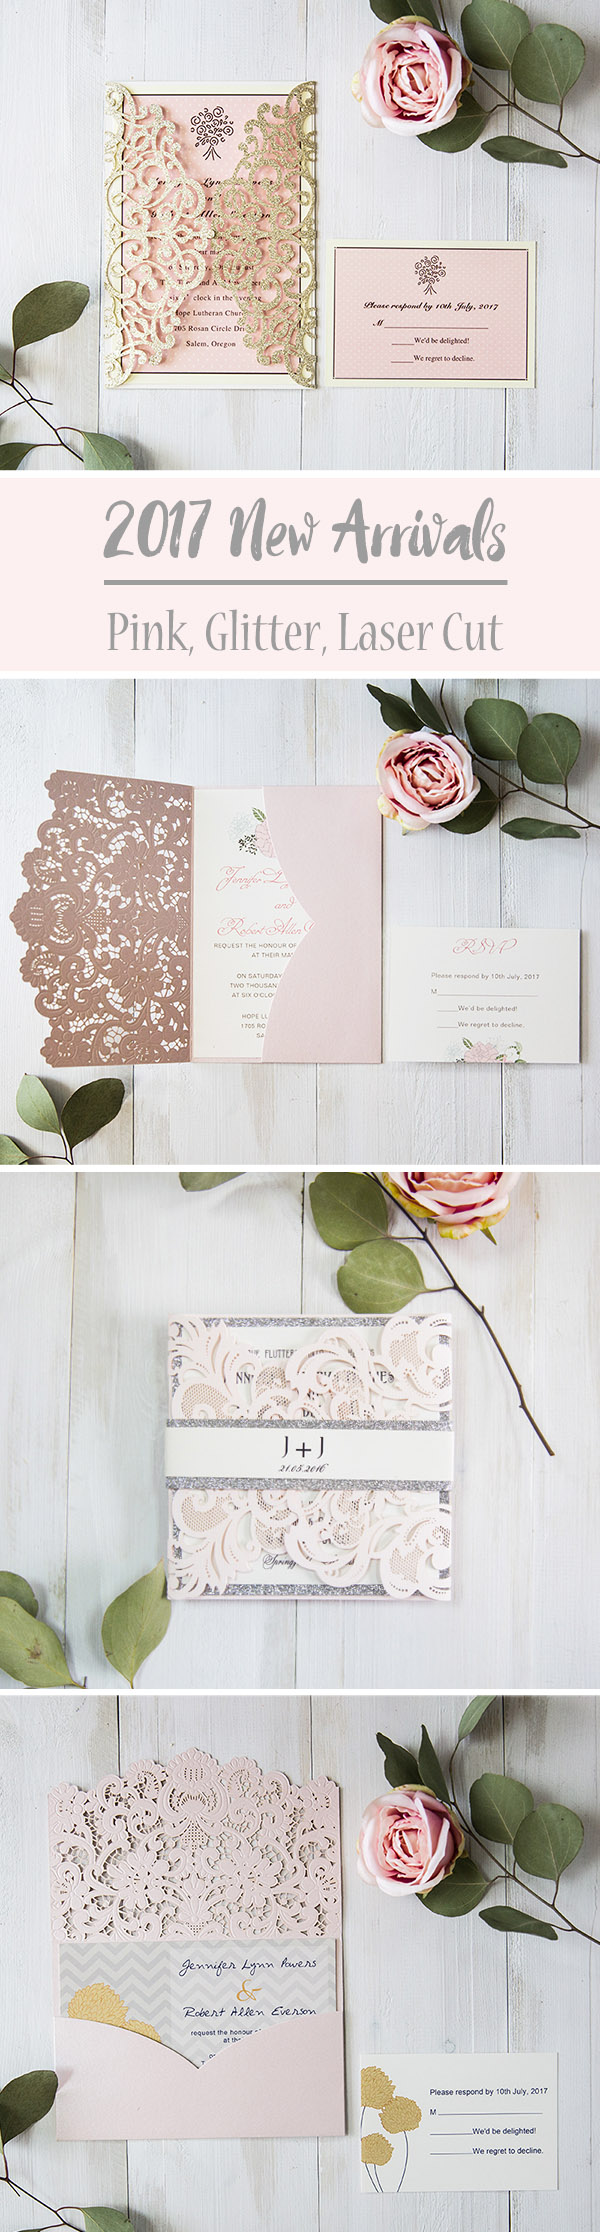 7 Super Elegant Pink Wedding Invitations from EWI 2017 New Arrivals